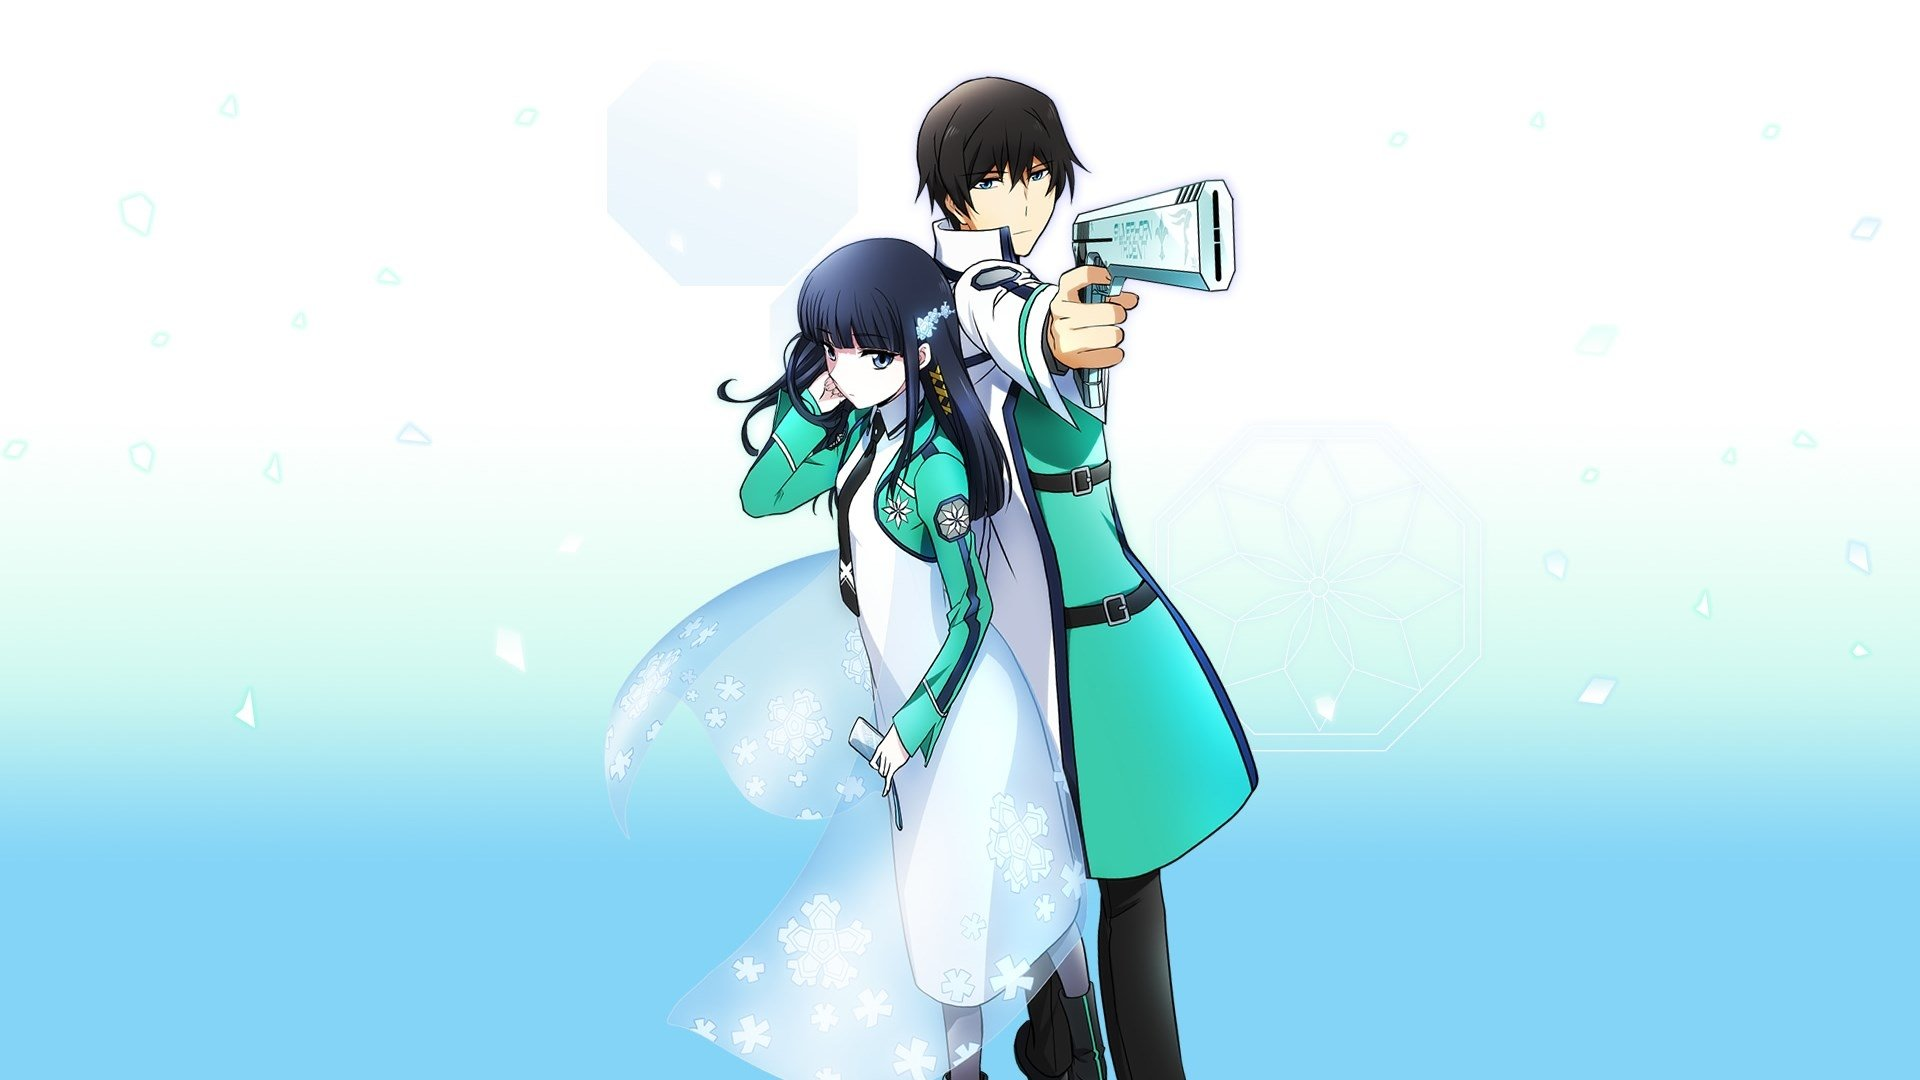 Anime Wallpapers The Irregular At Magic Toko Online Highschool HD 4K Download For Mobile iPhone & PC